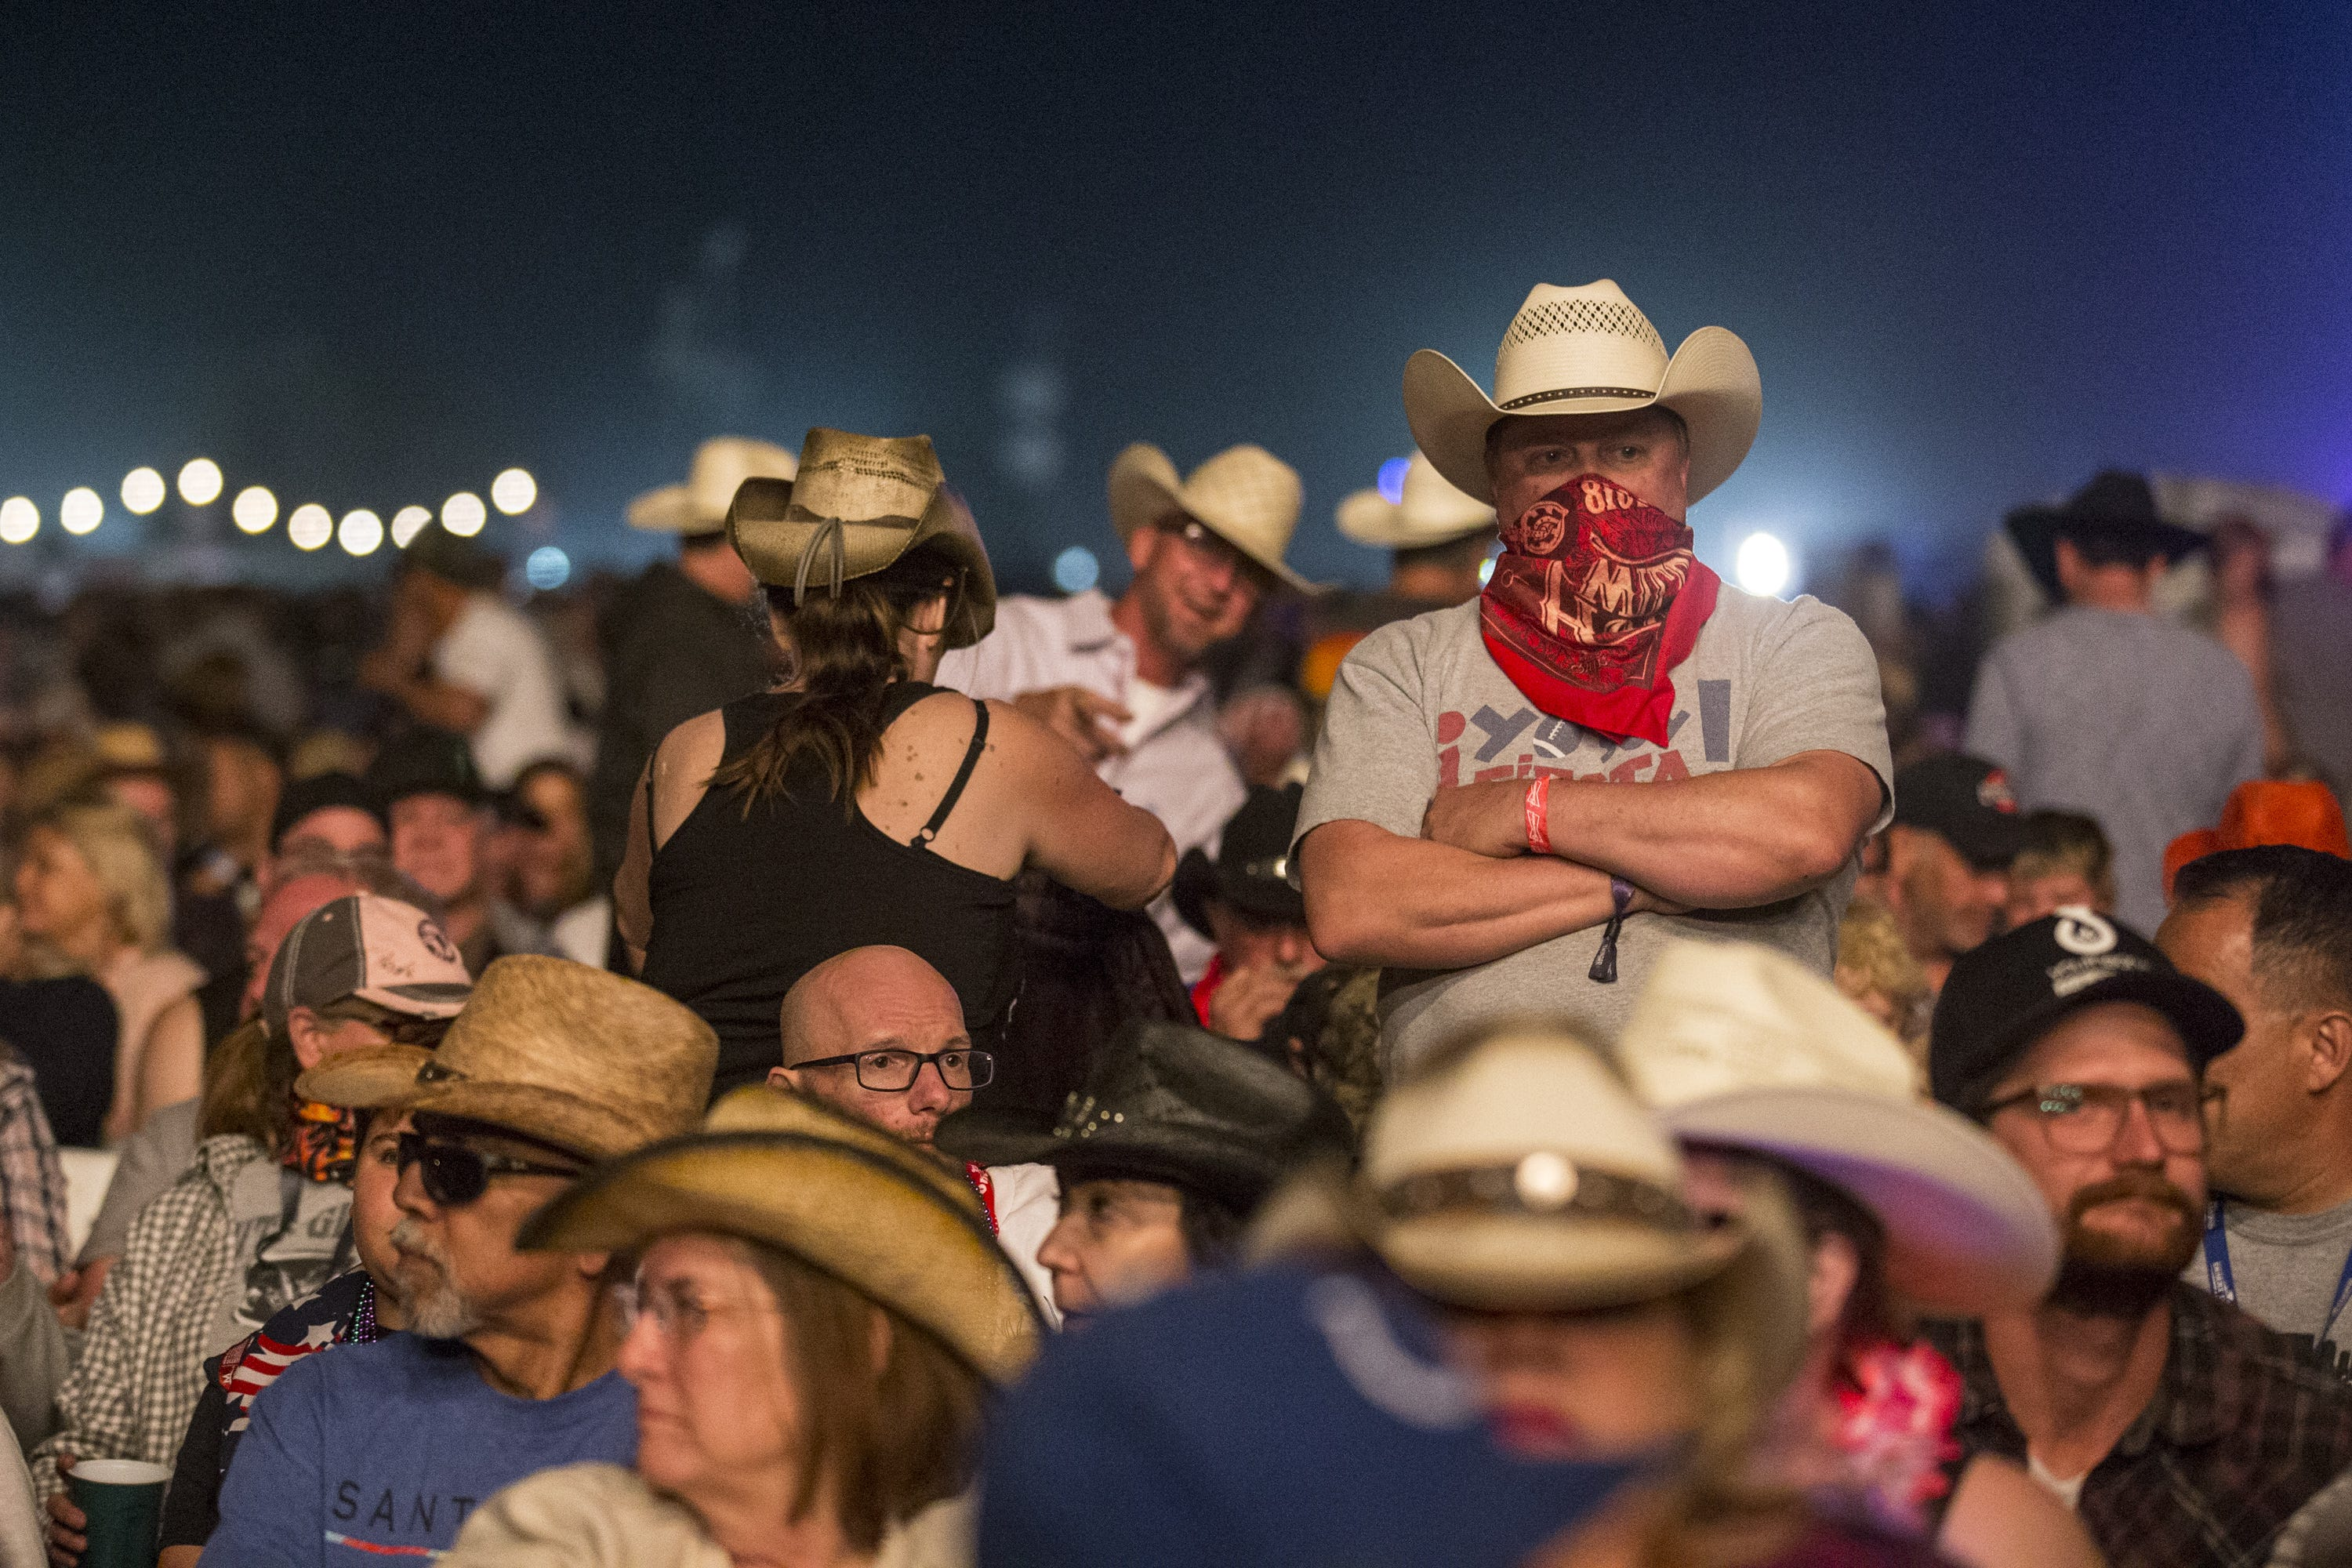 Country Thunder by the numbers: Let's break down the figures for the 2019 festival